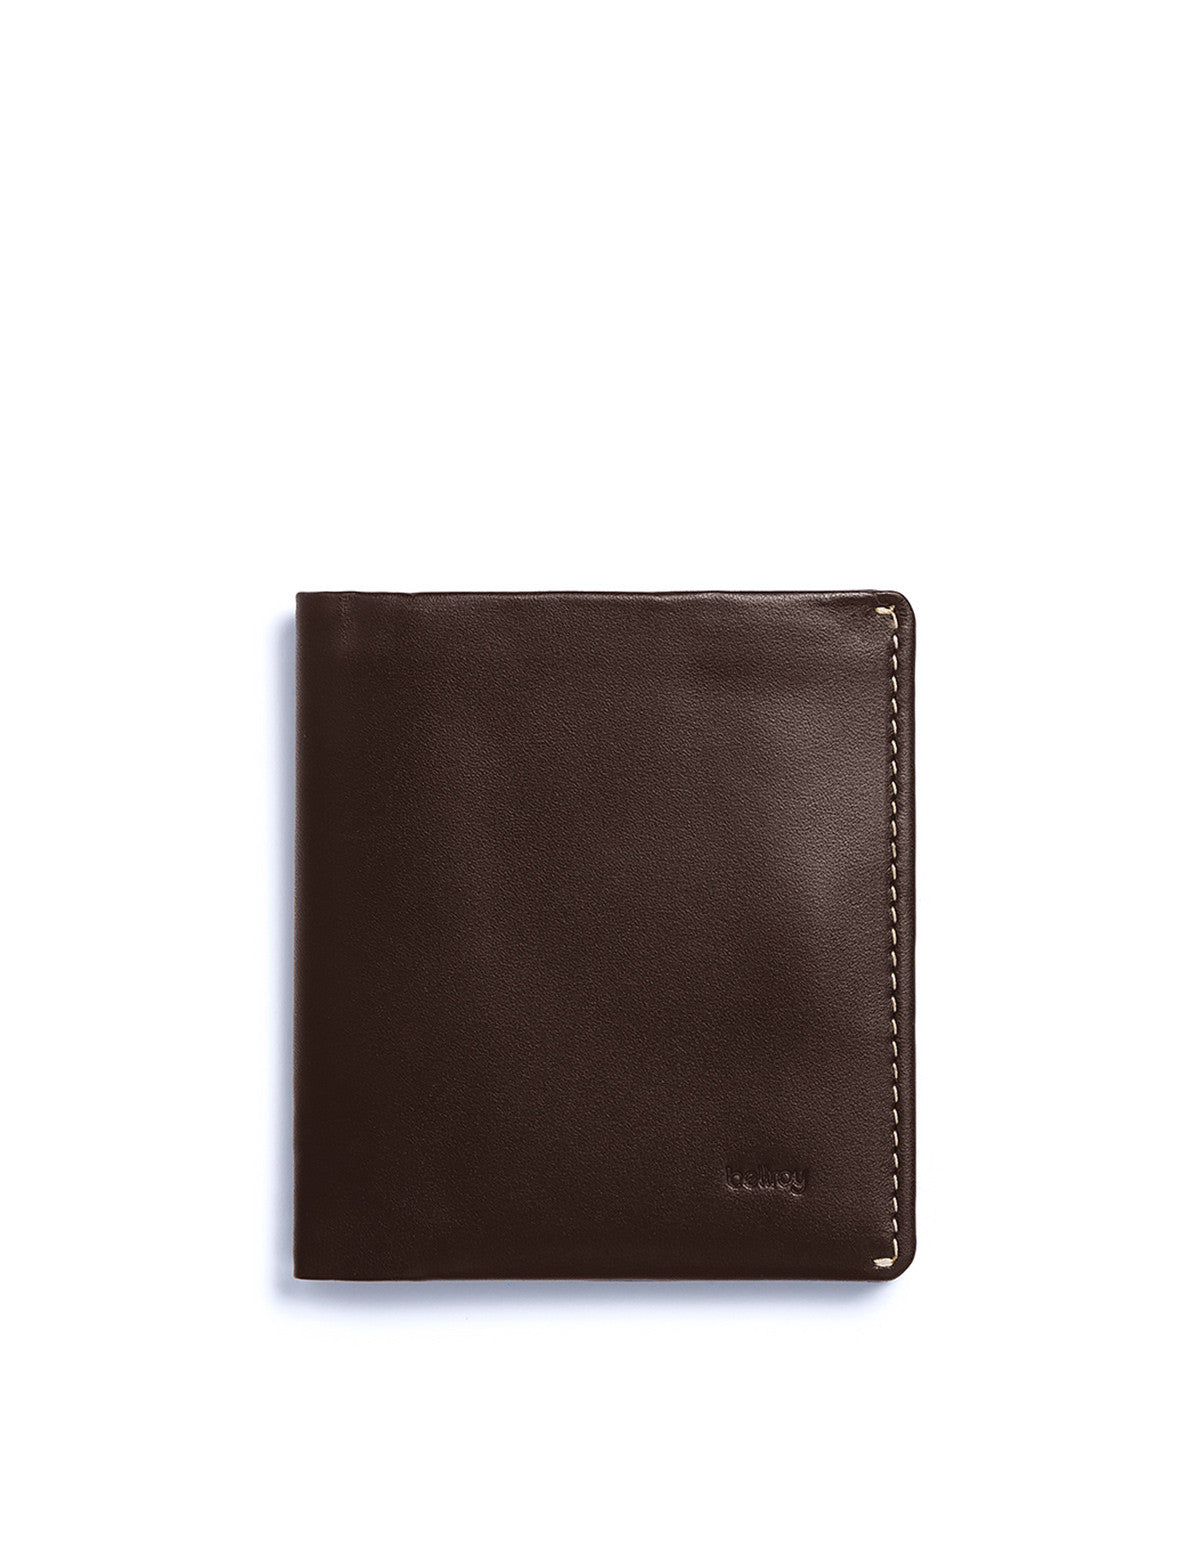 Bellroy Note Sleeve Wallet Java - Still Life - 1